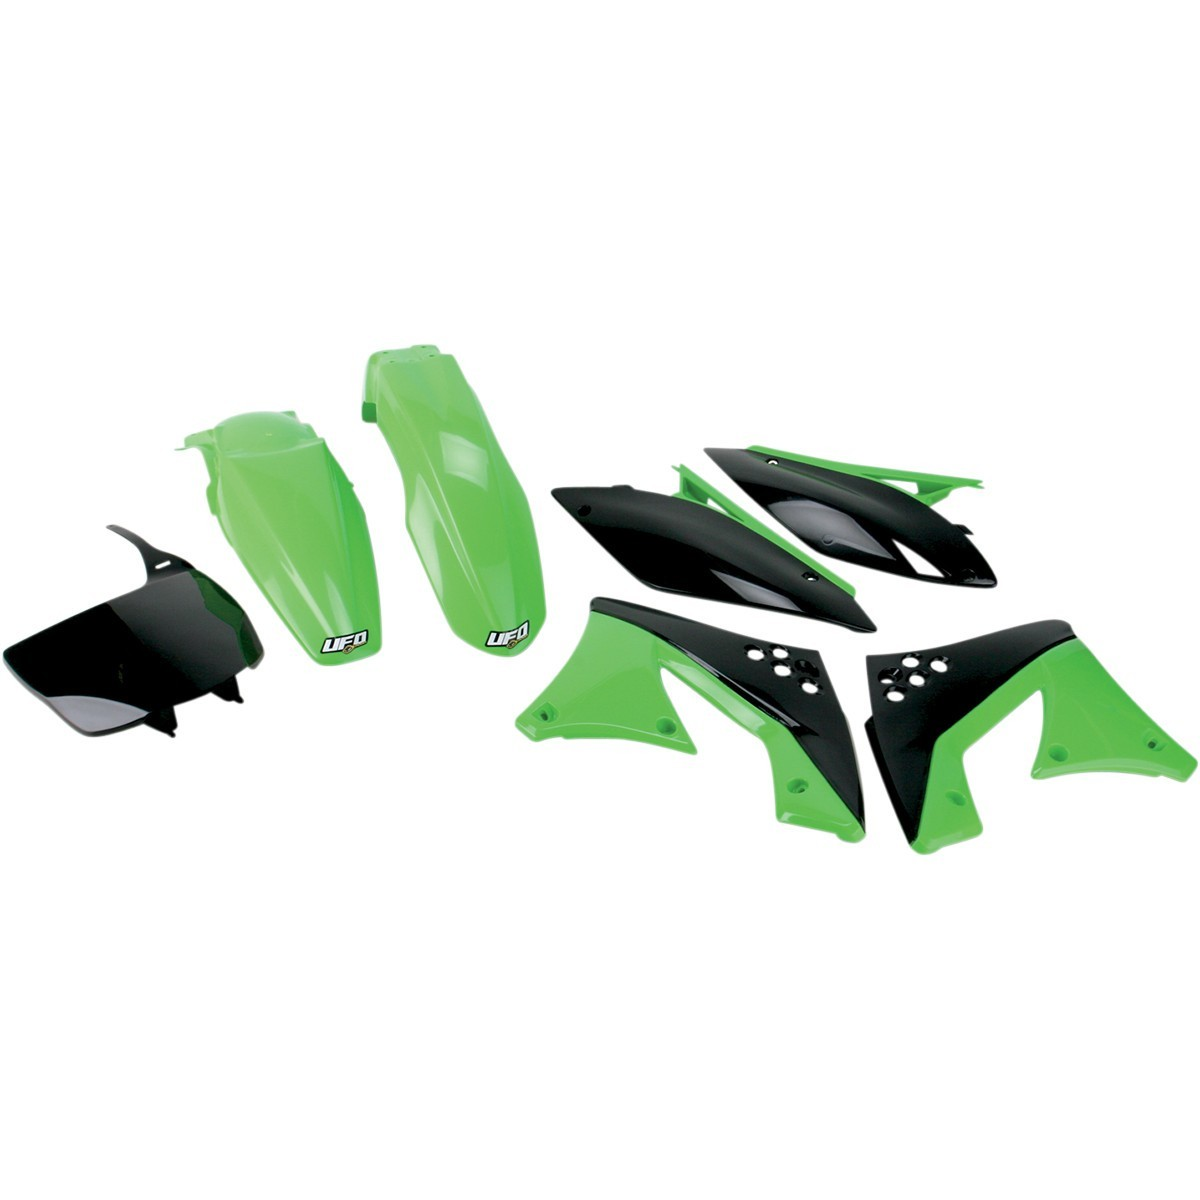 09 OEM Colors for 09-12 Kawasaki KX250F Acerbis Plastic Kit